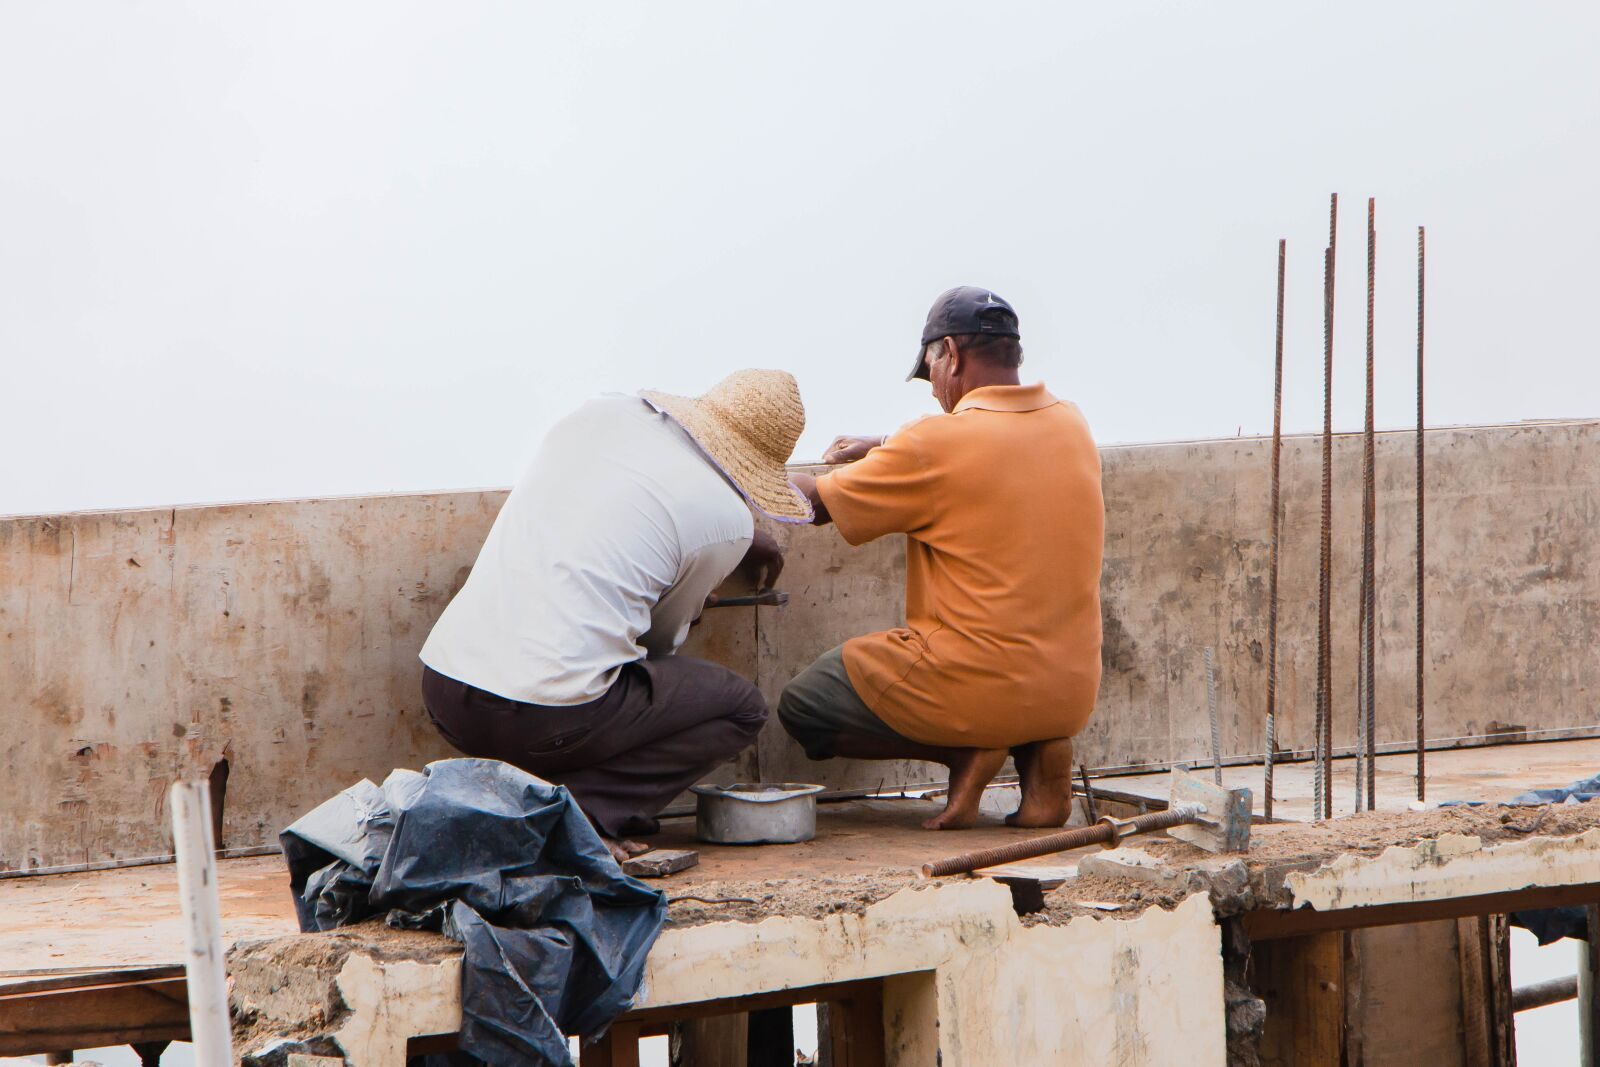 """Canon EOS 70D sample photo. """"Men, working, hardworking"""" photography"""